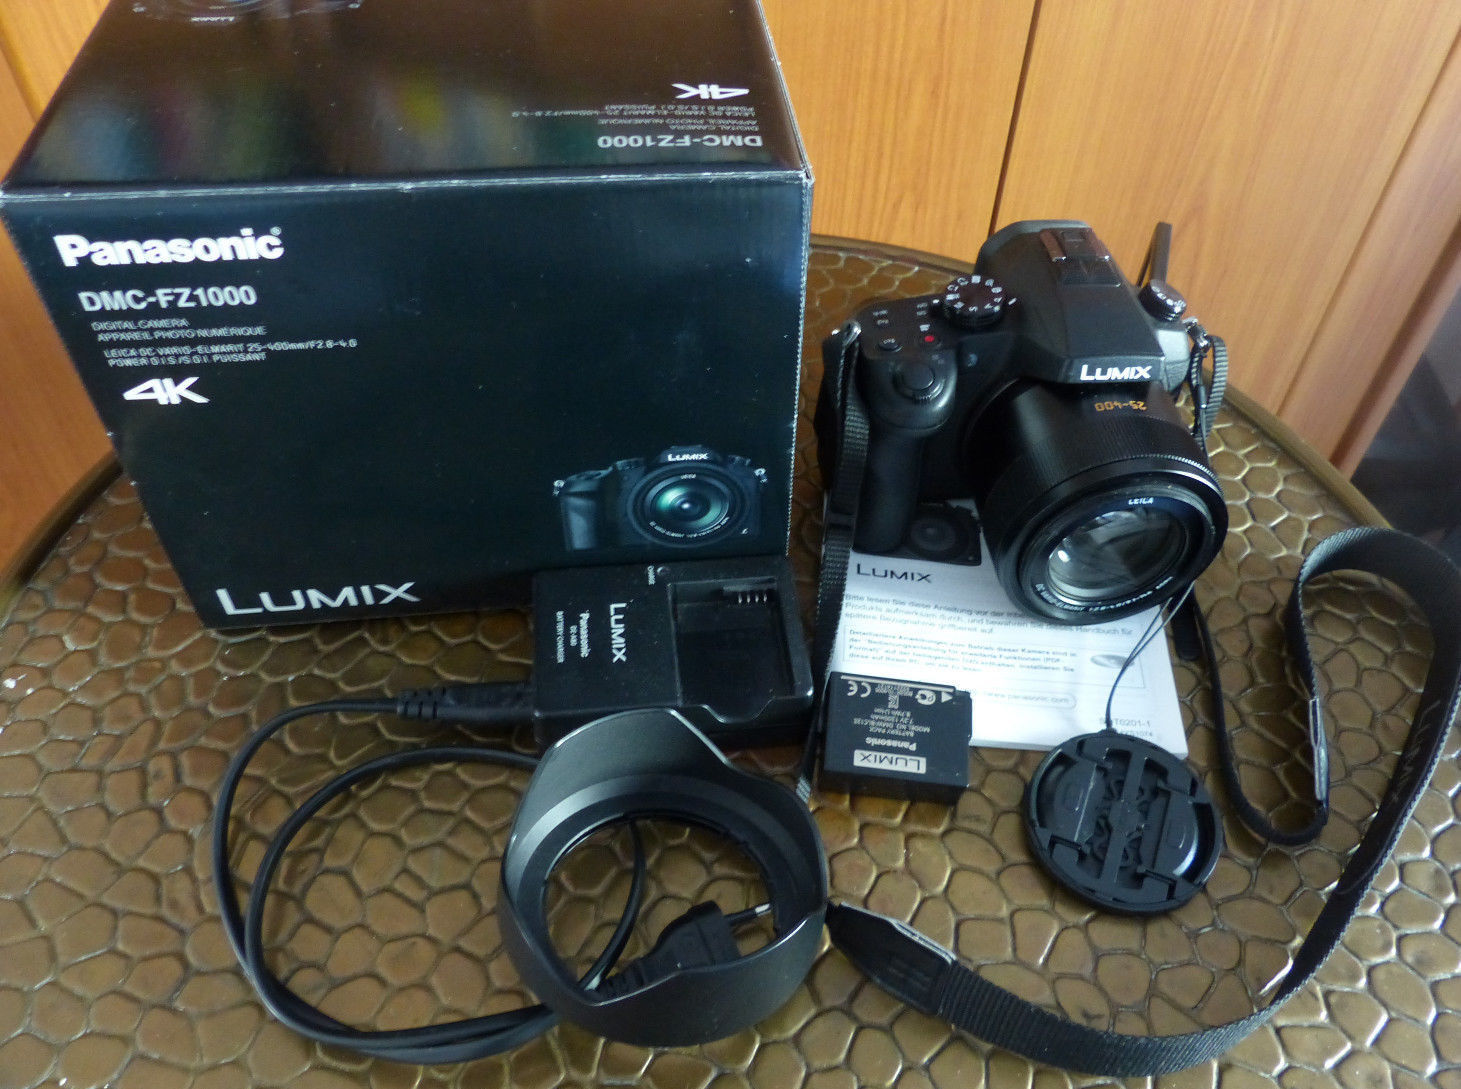 Panasonic LUMIX DMC-FZ1000 20.1 MP Digitalkamera - Schwarz, Garantie